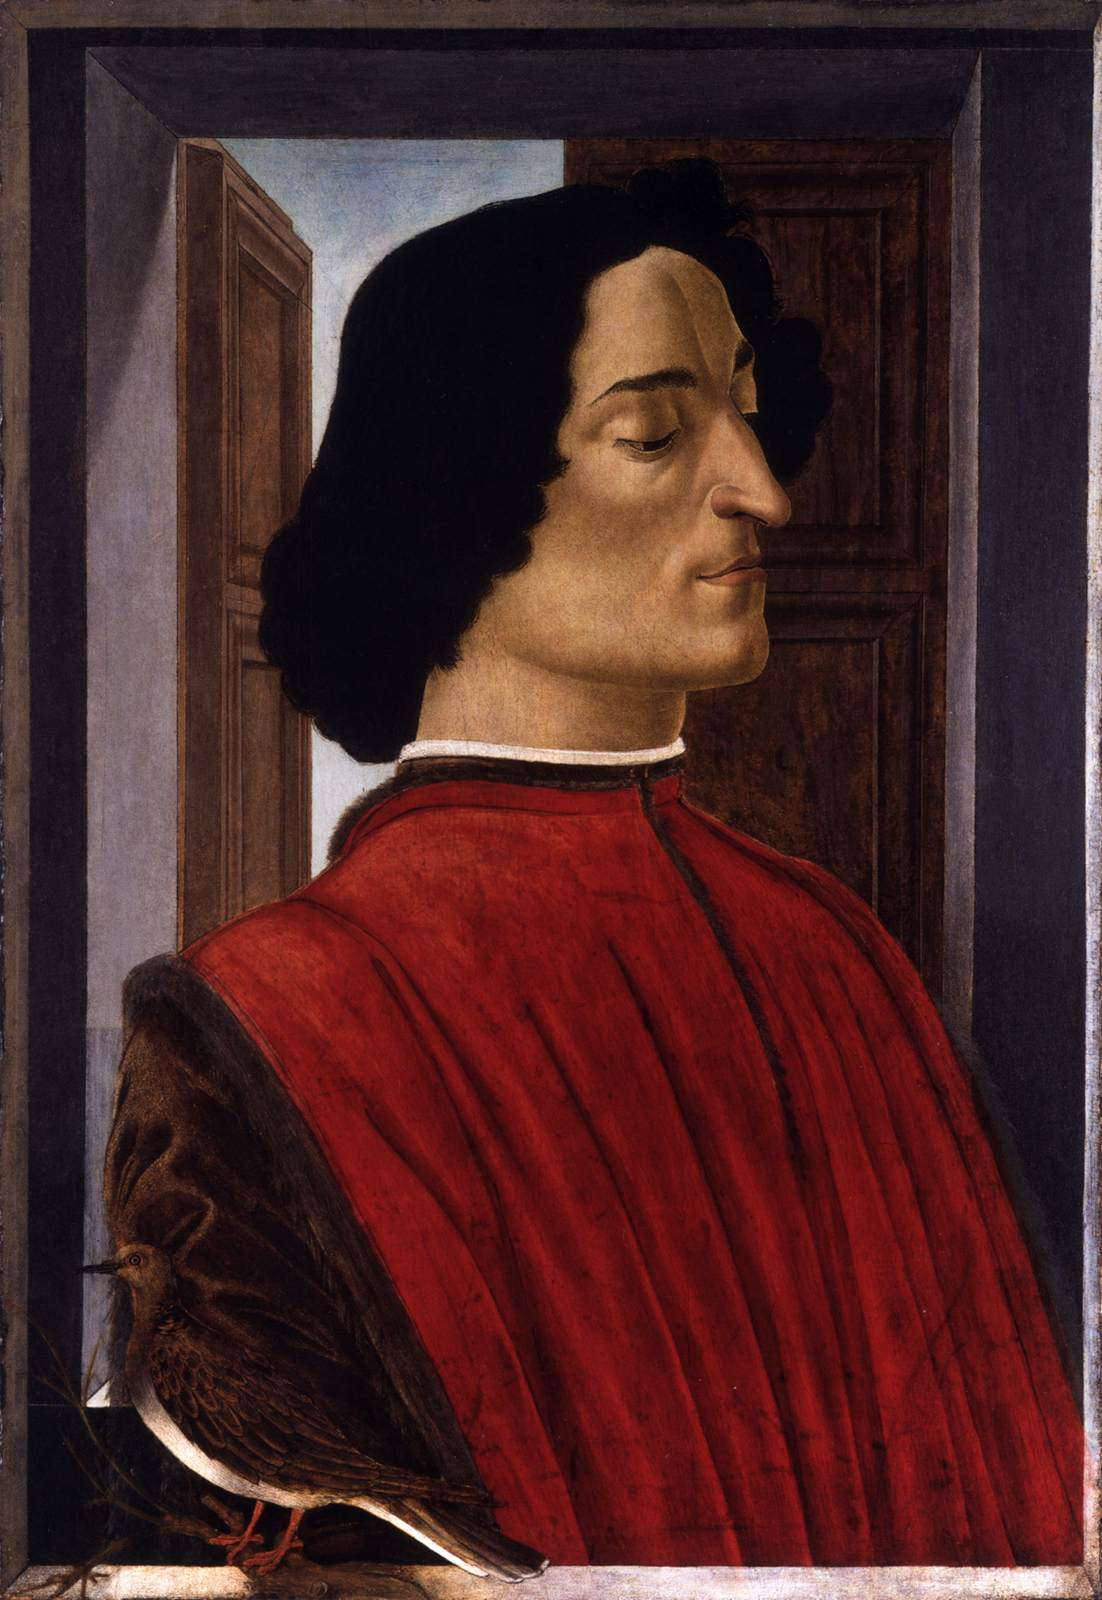 the characteristics of the tomb of giuliano de medici made by michelangelo Michelangelo's sculptures for the tomb of giuliano de'medici are unfinished masterpieces.